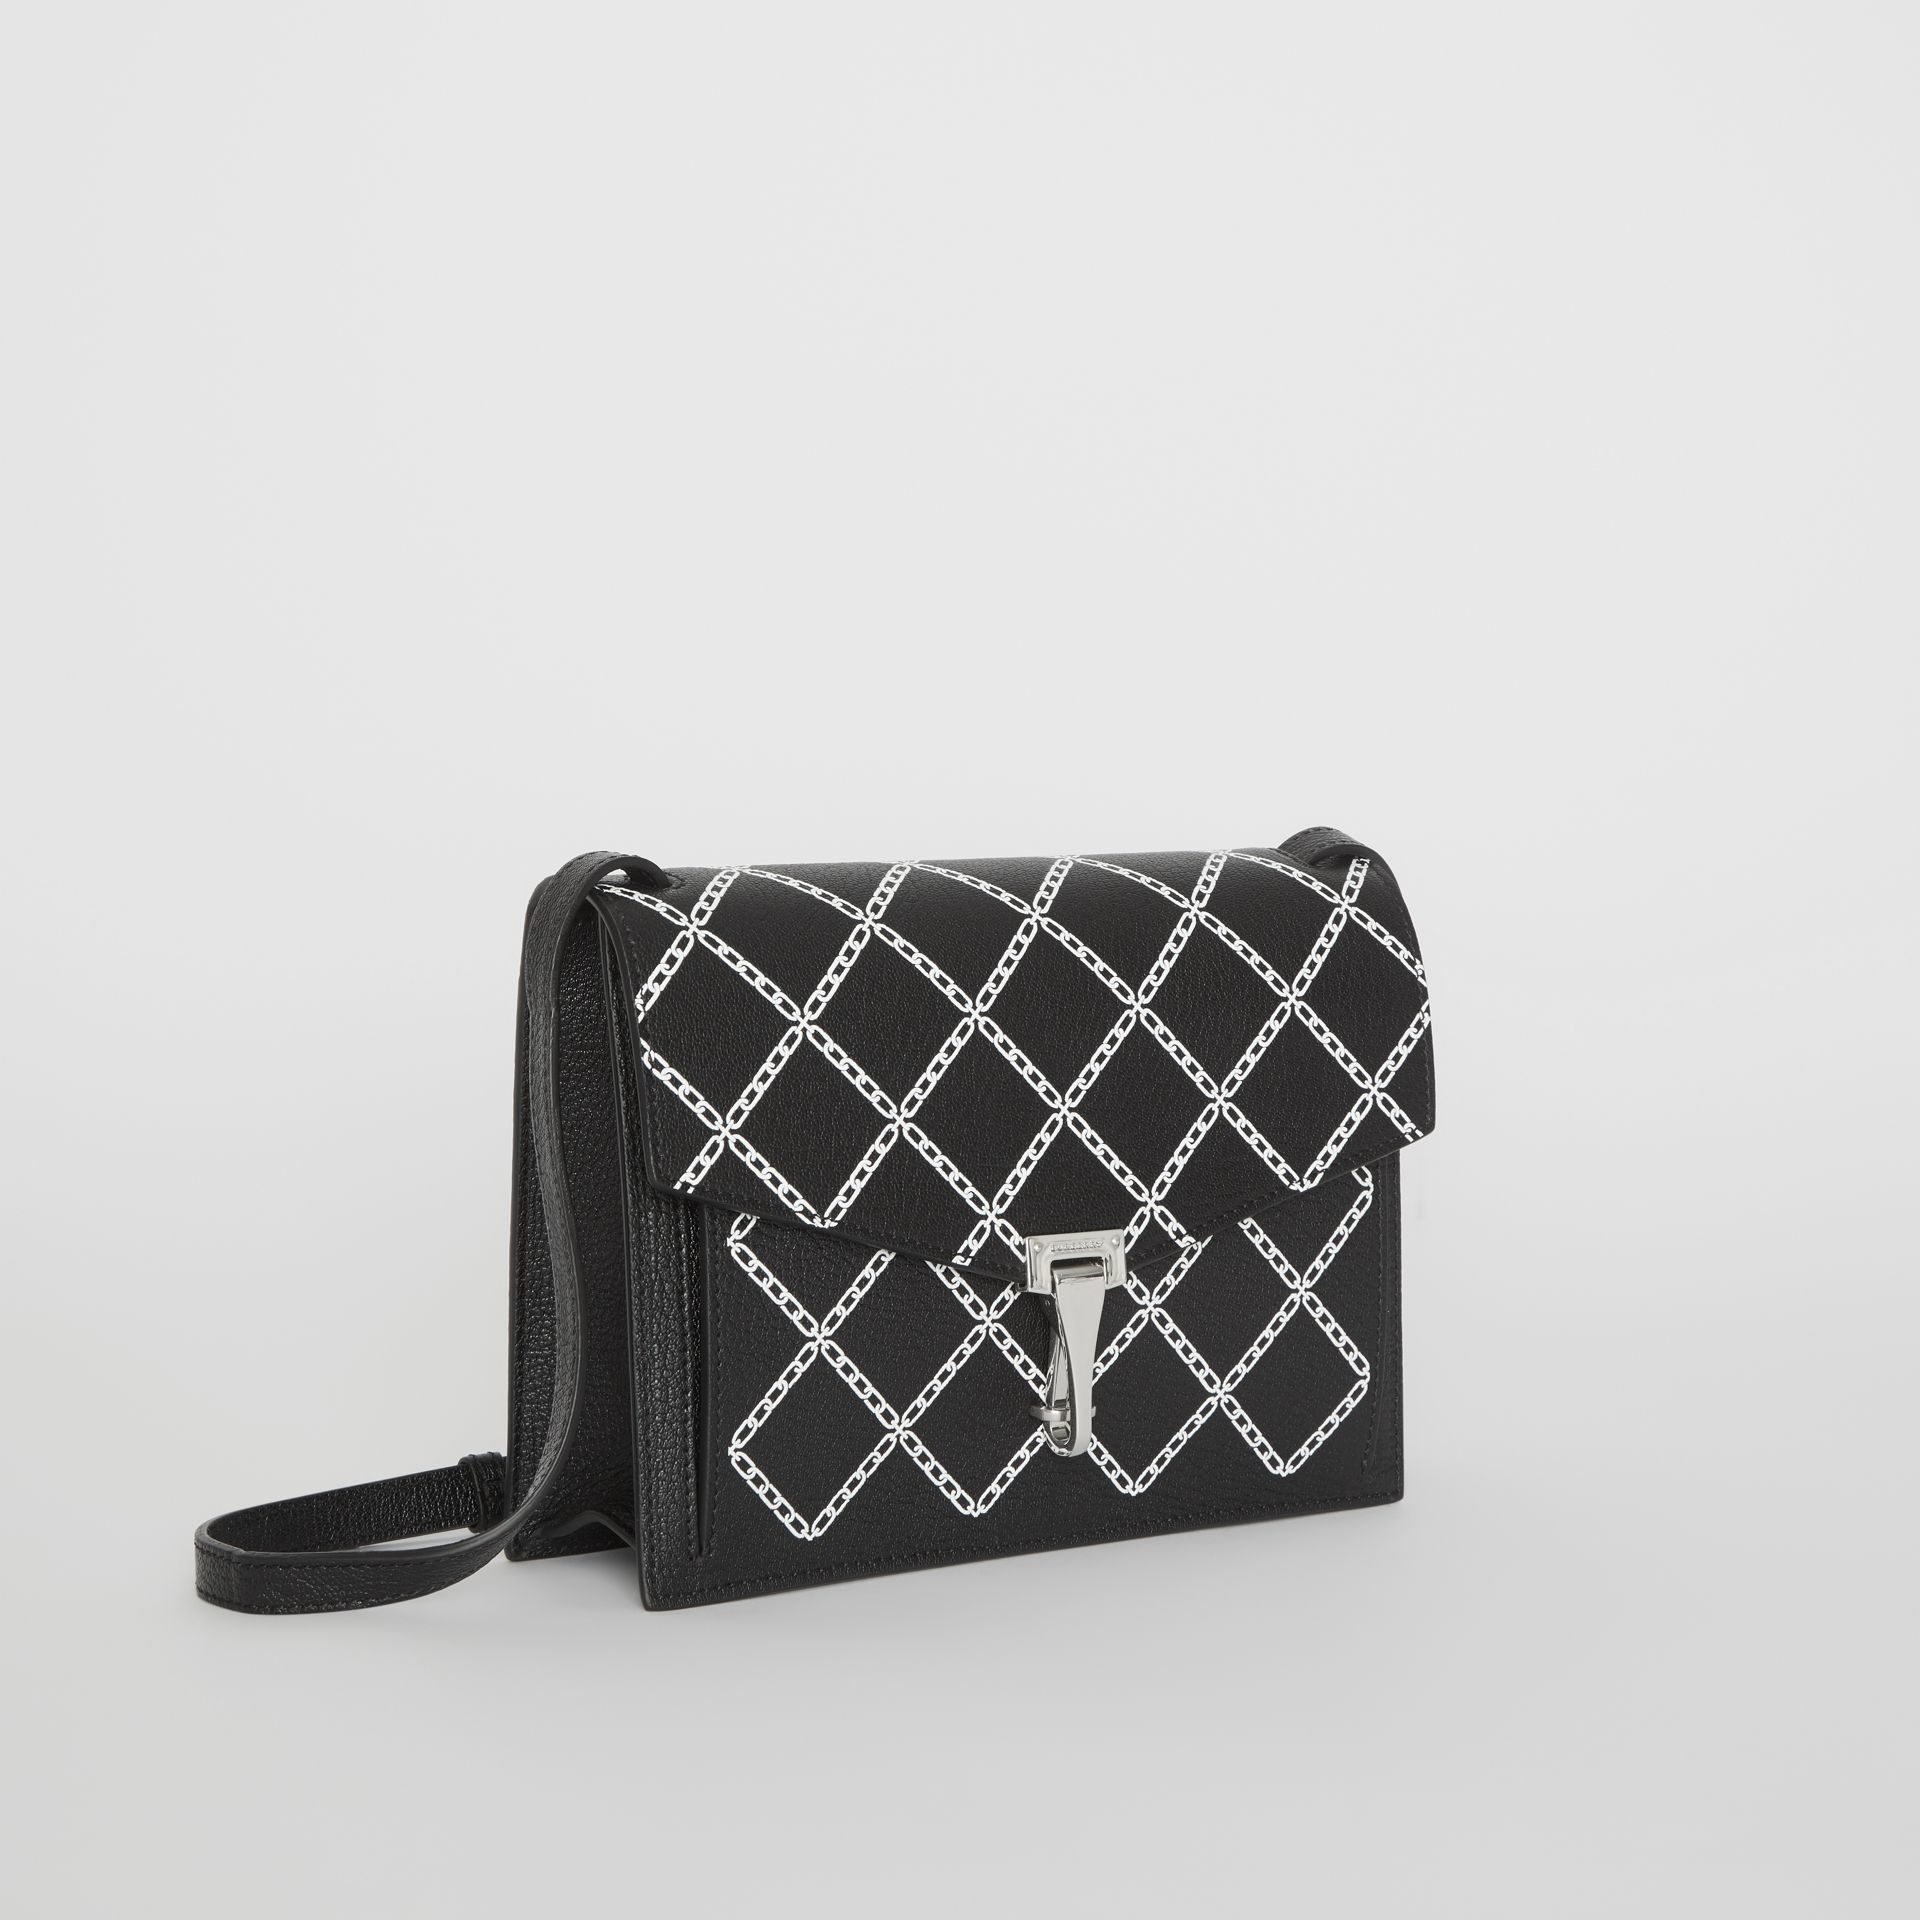 Small Link Print Leather Crossbody Bag in Black - Women | Burberry United States - gallery image 6